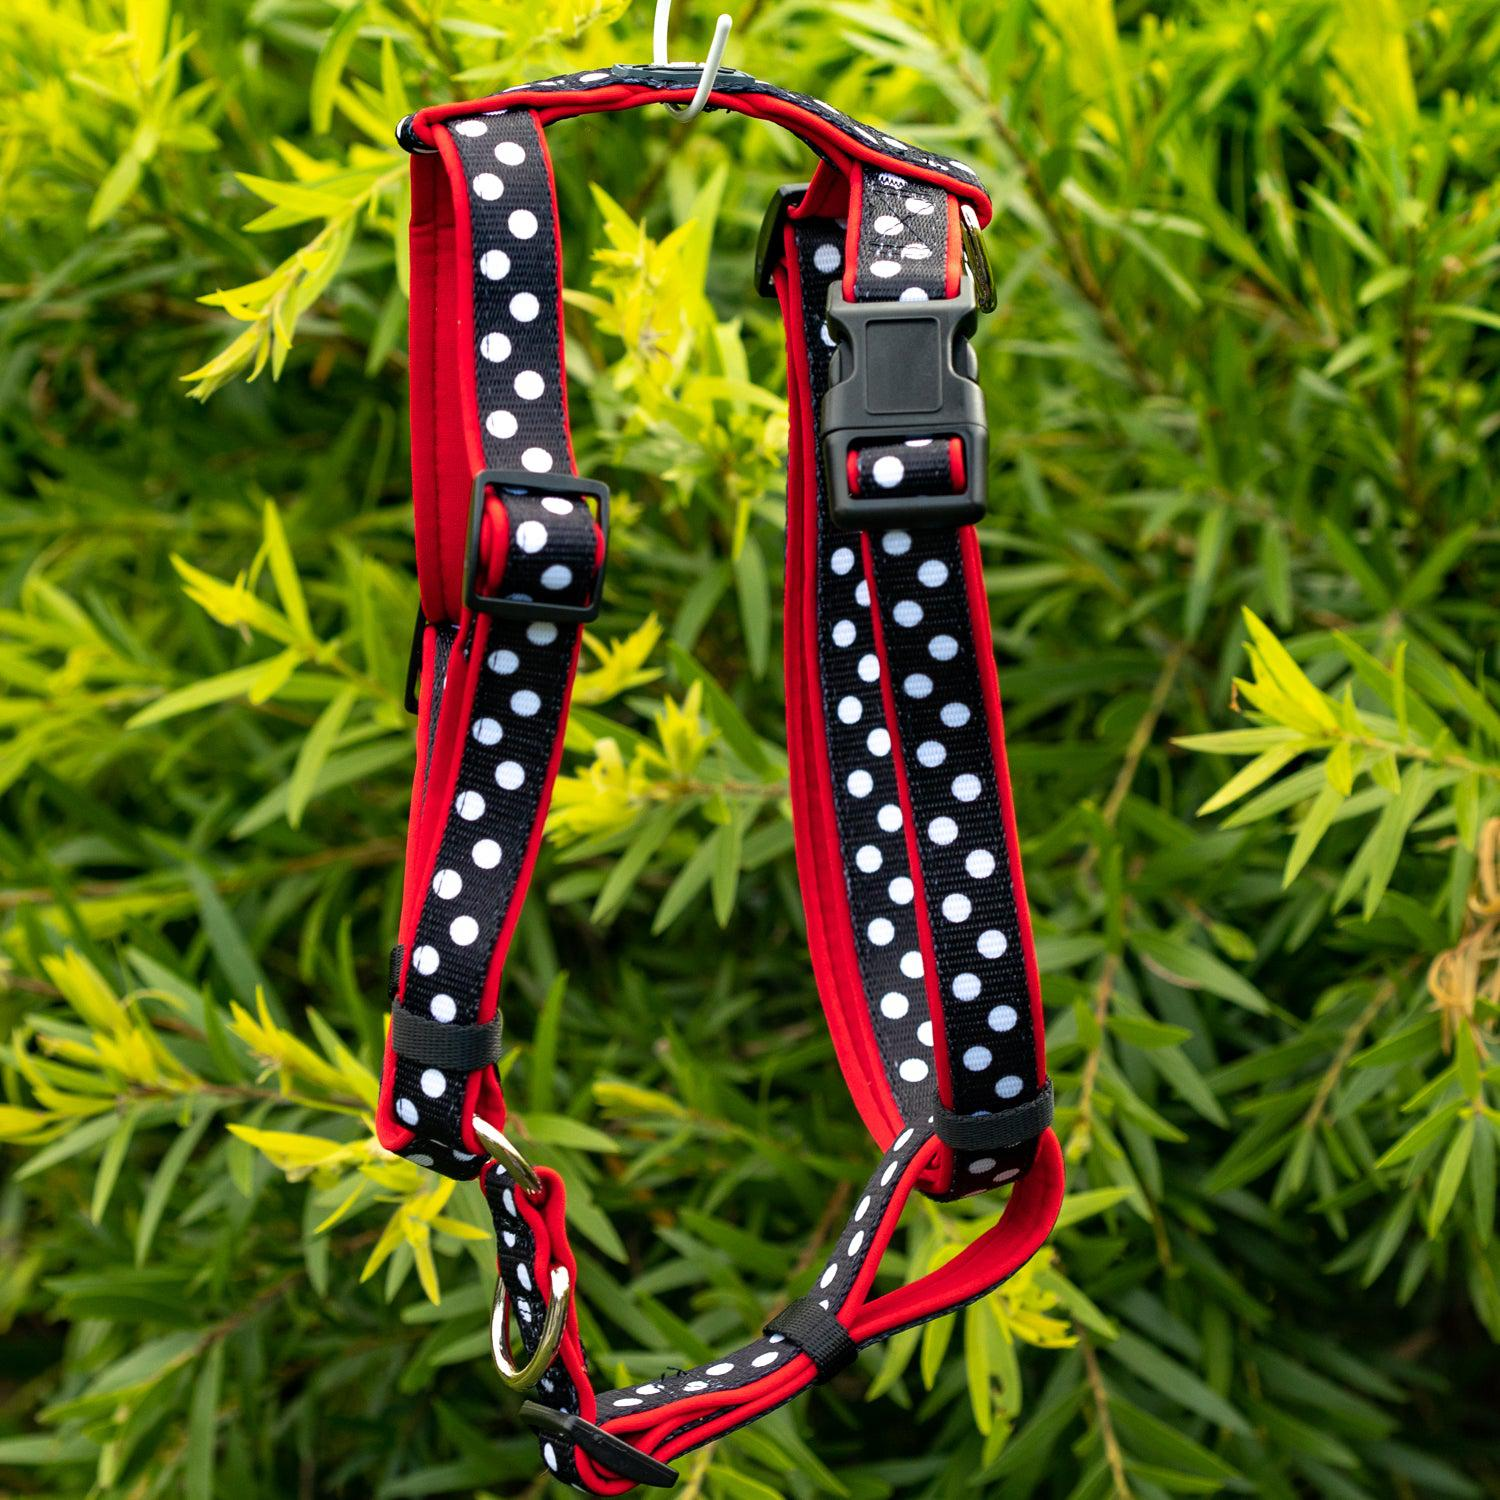 DOG HARNESS, Spotty Dox- Padded H-Harness, With Front & Back Attachment-Harness-Dizzy Dog Collars